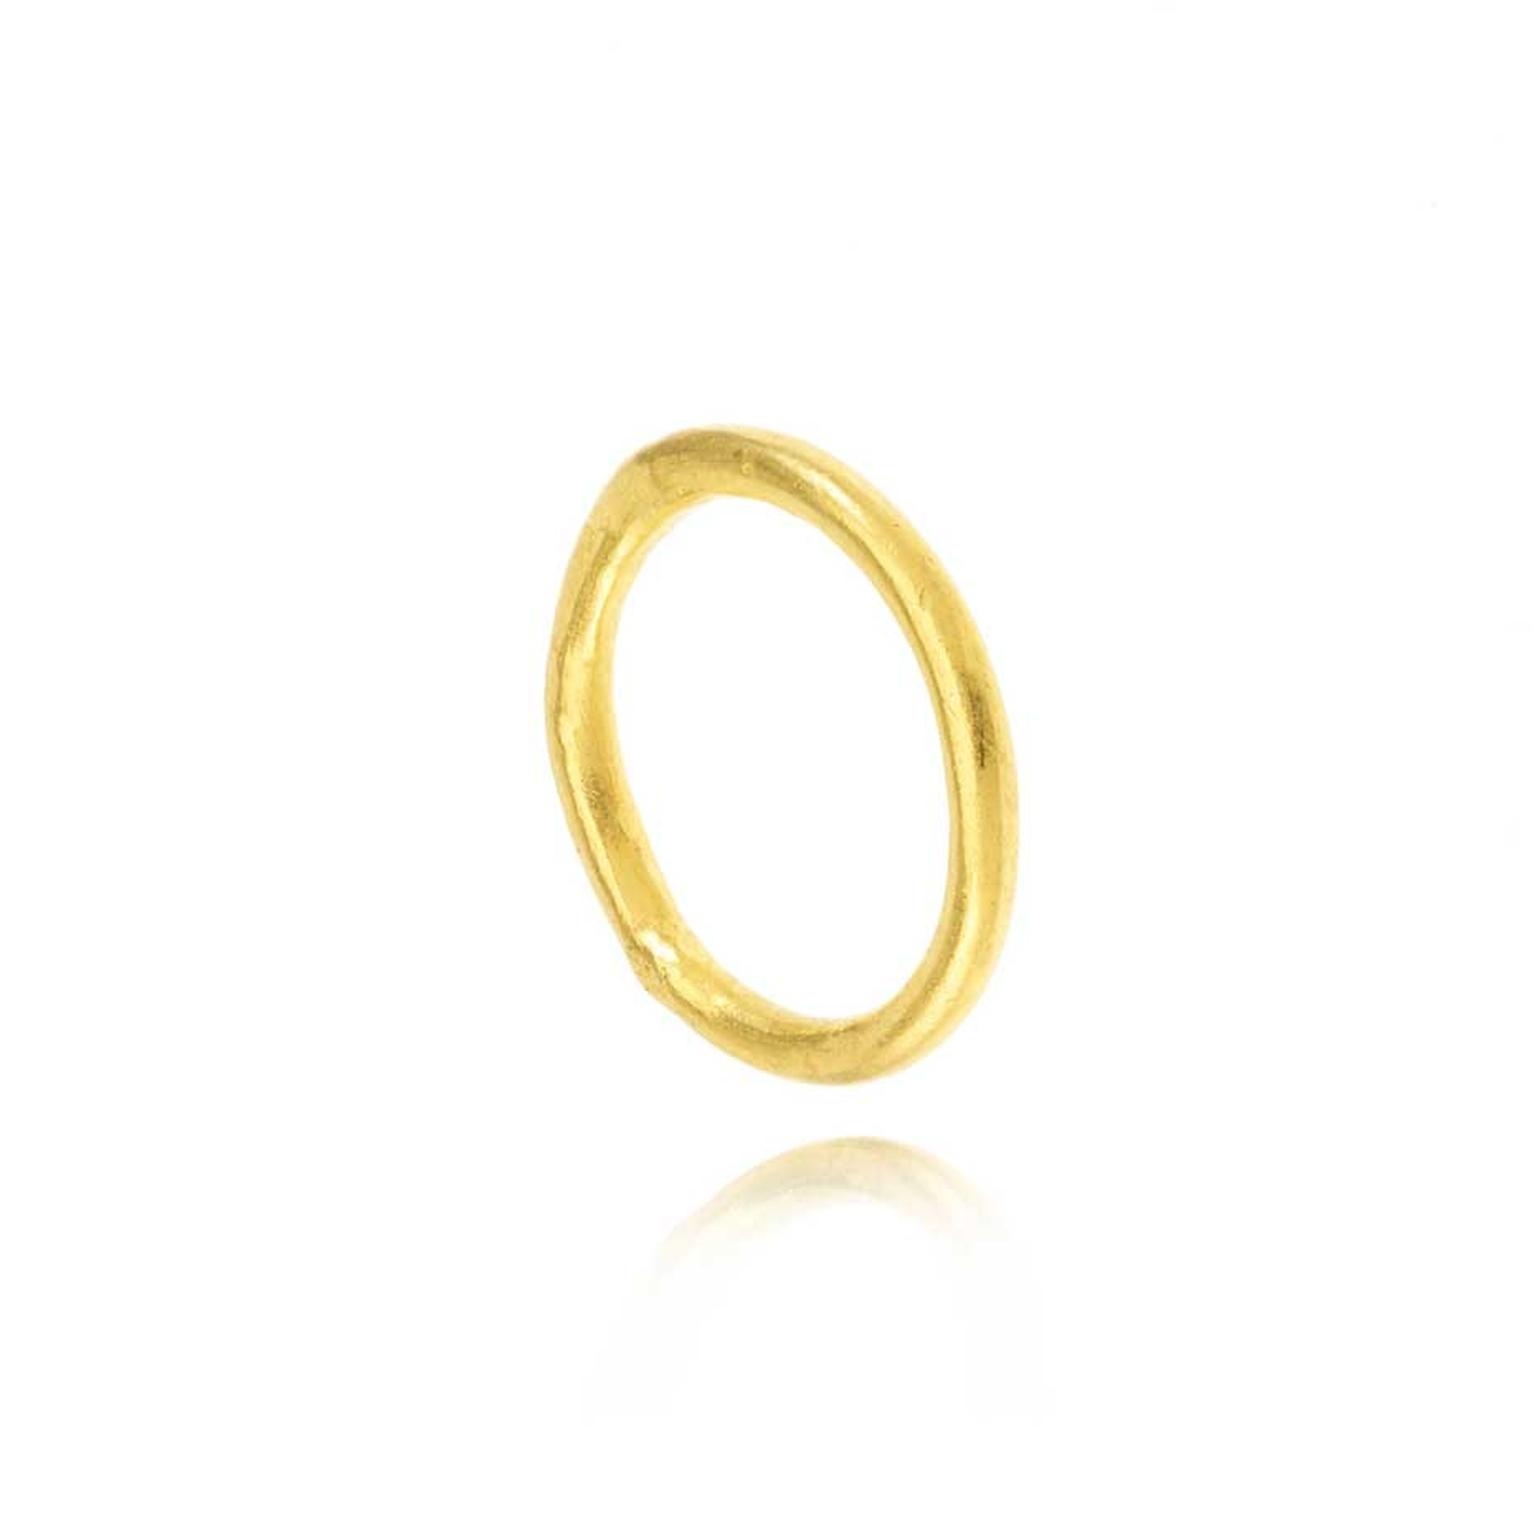 Pippa Small ethical wedding band in Fairtrade gold.